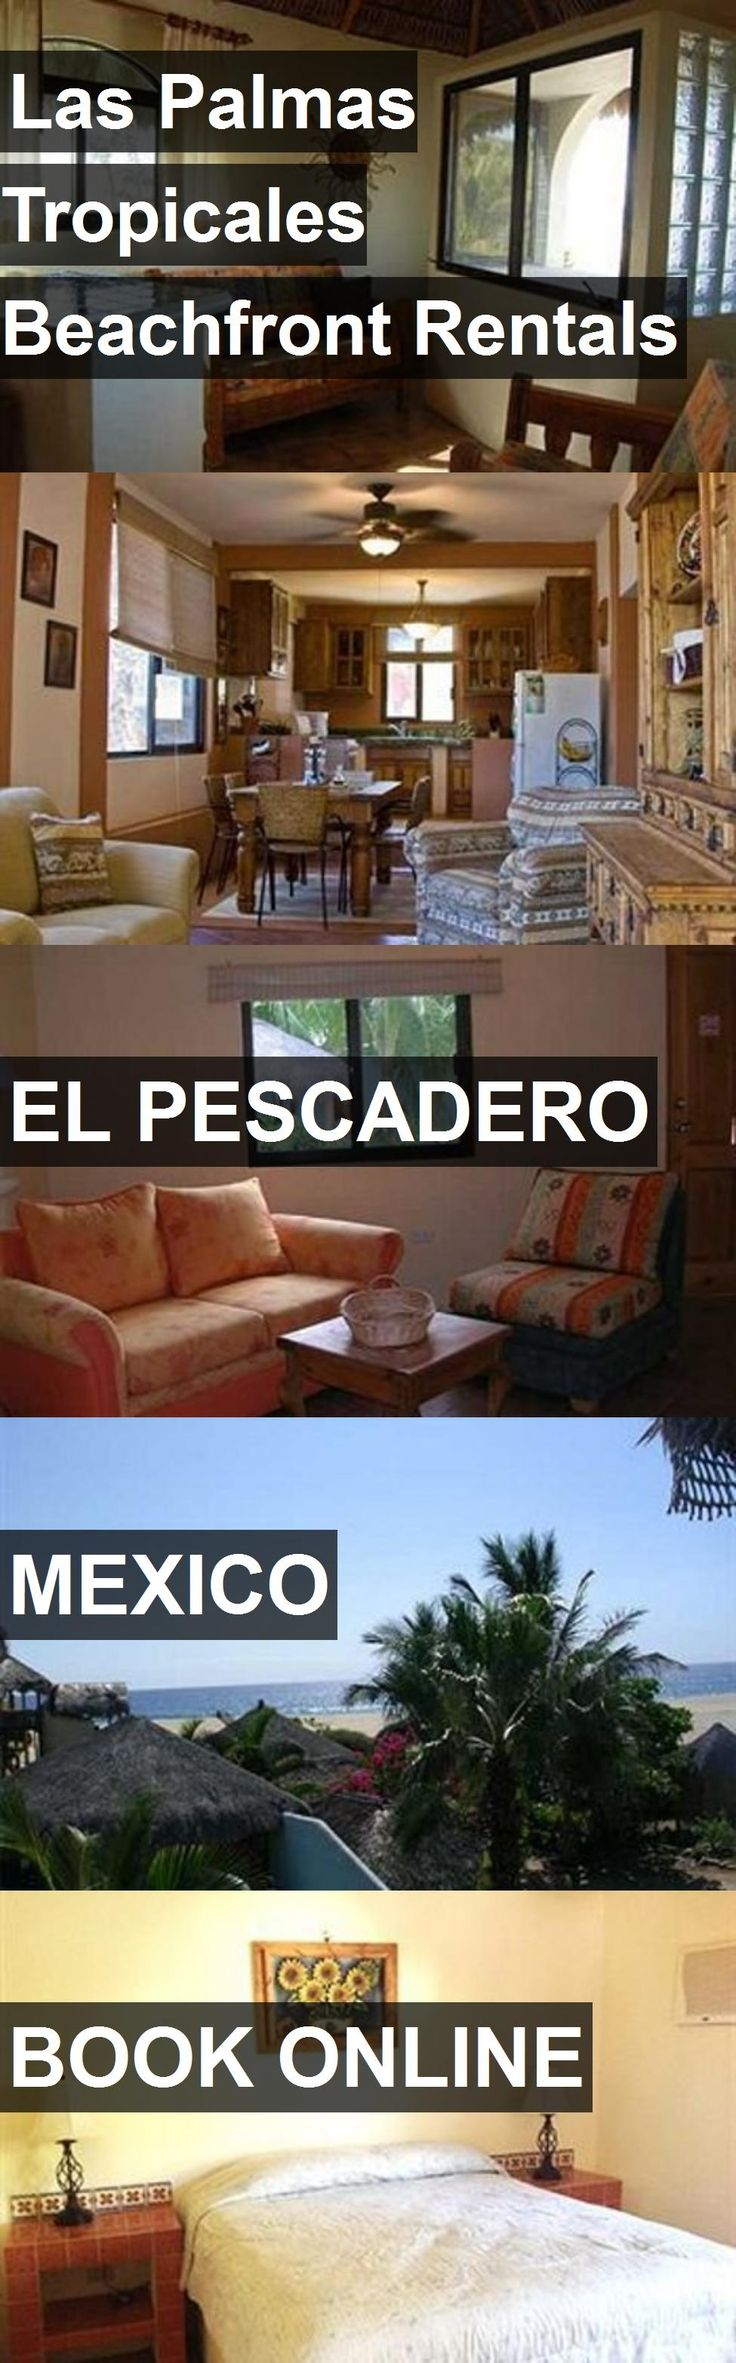 Hotel Las Palmas Tropicales Beachfront Rentals in El Pescadero, Mexico. For more information, photos, reviews and best prices please follow the link. #Mexico #ElPescadero #travel #vacation #hotel